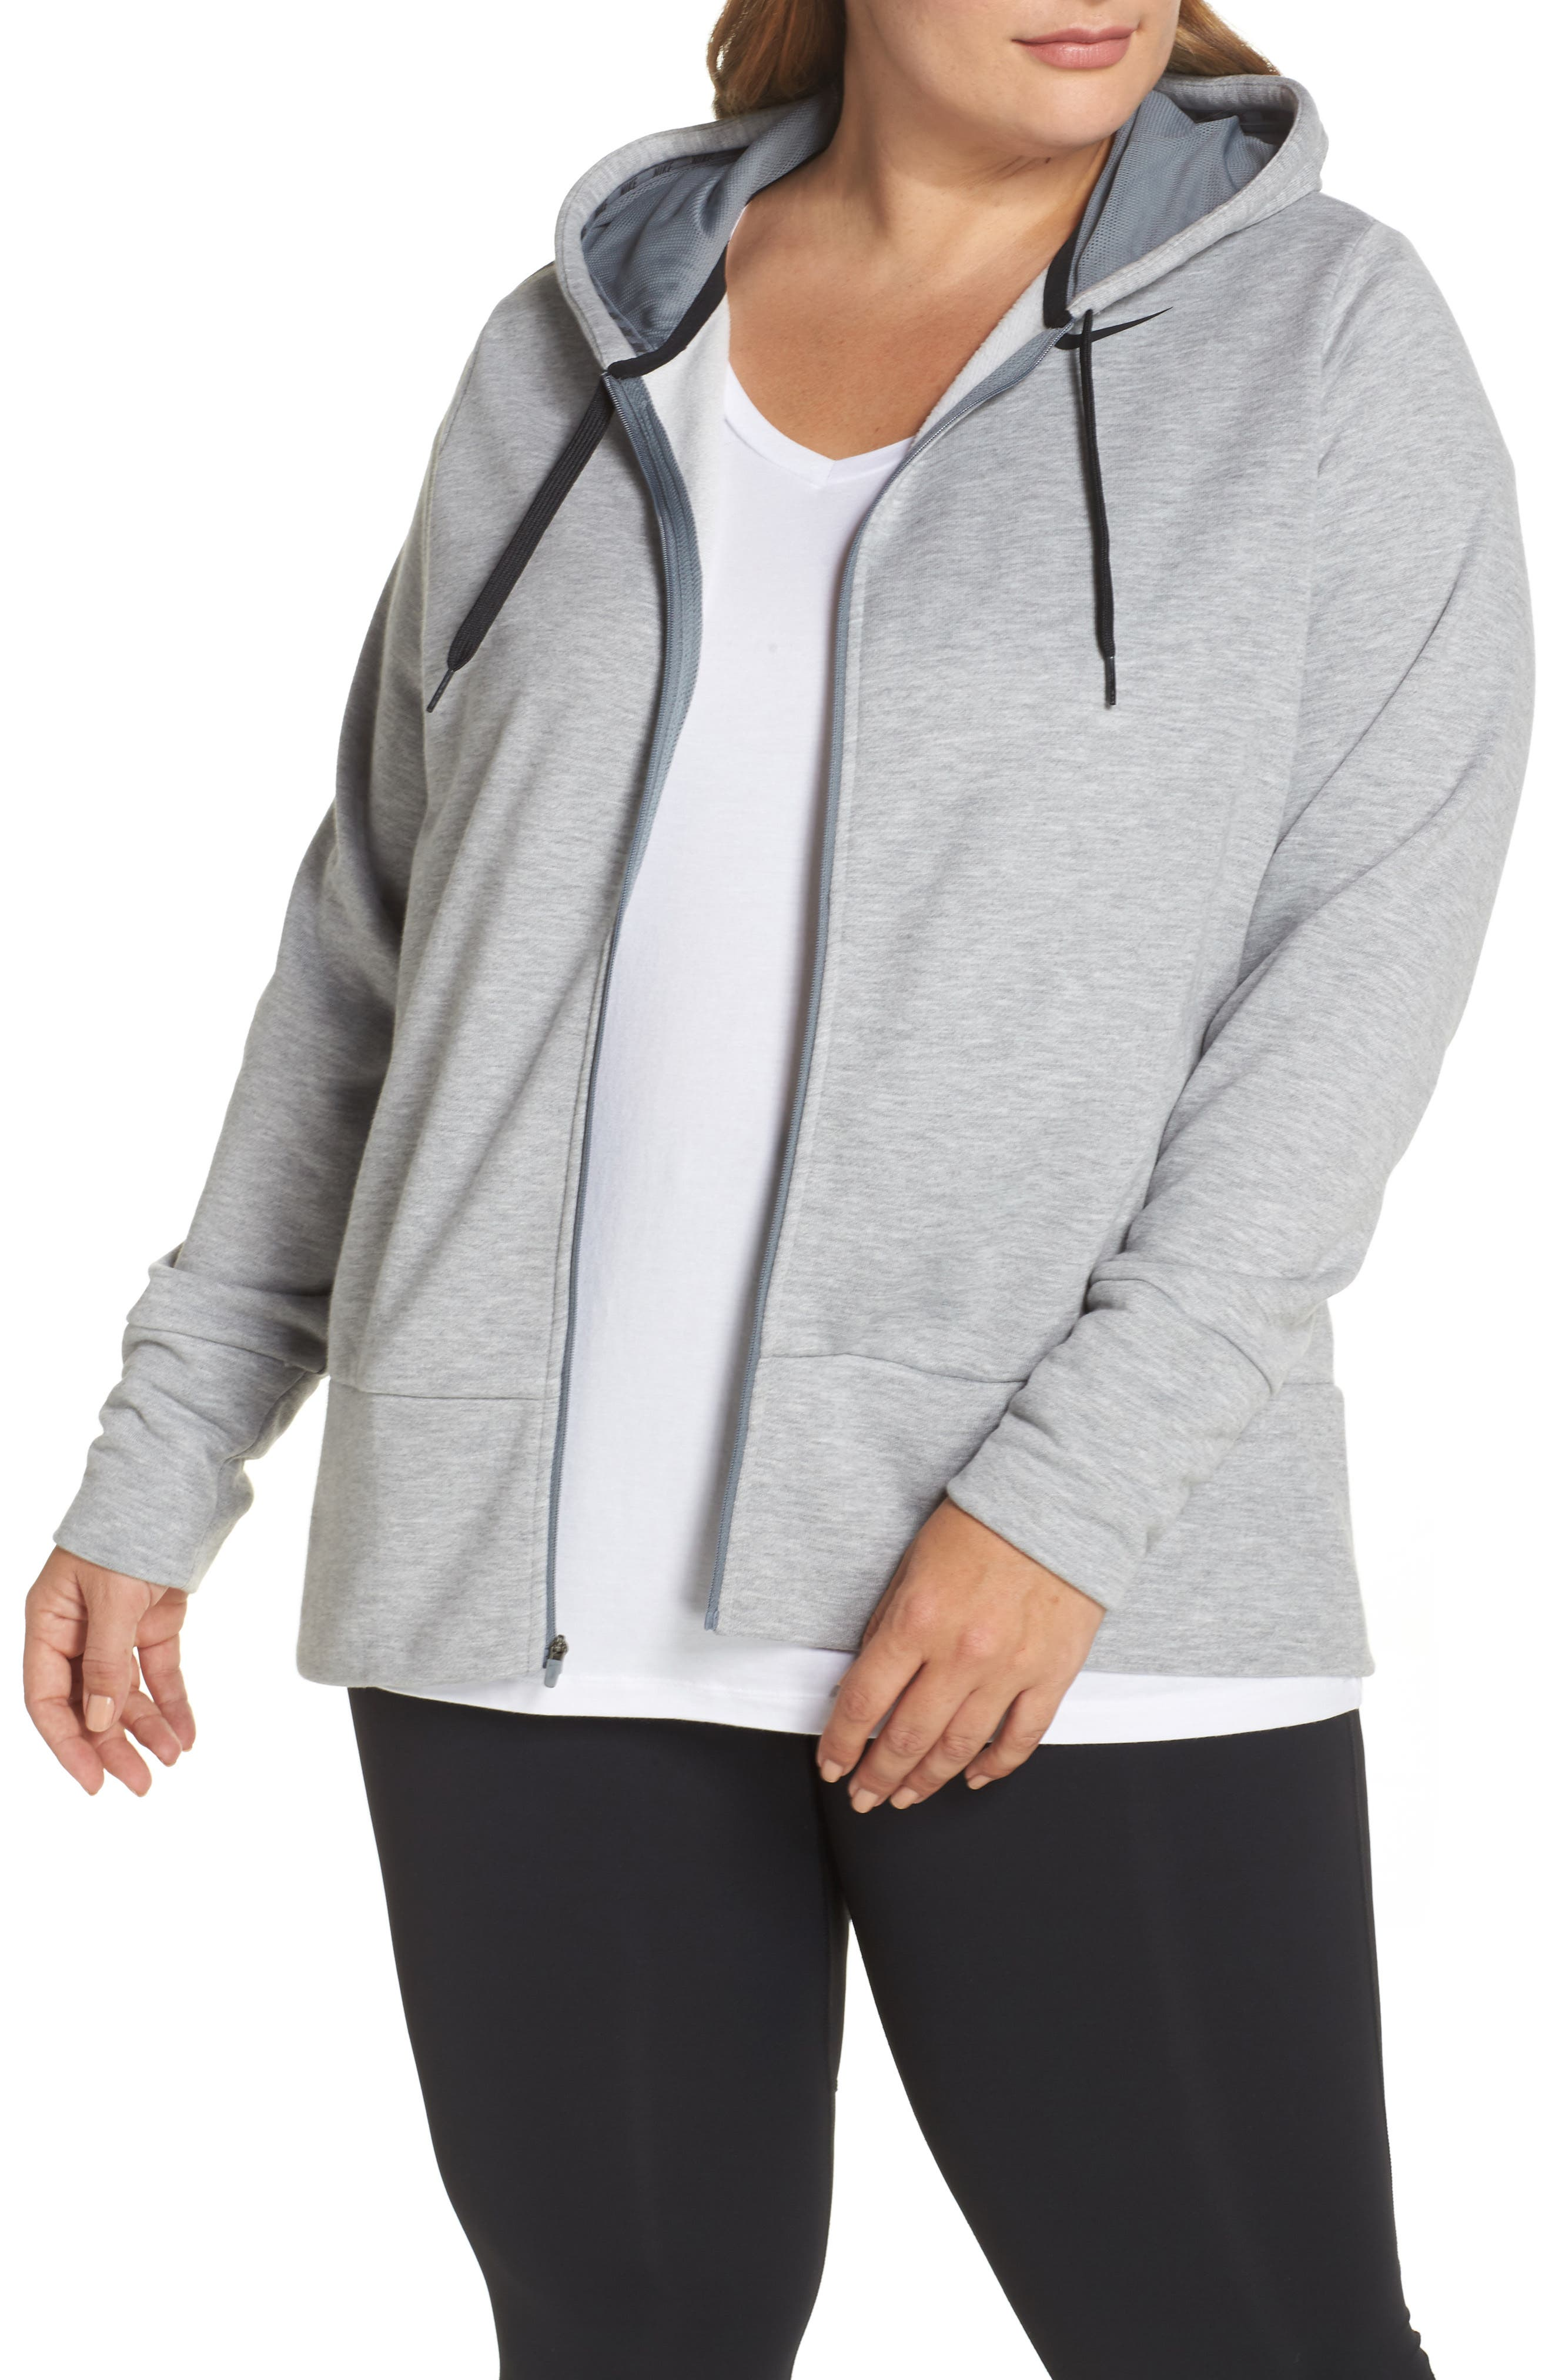 Nike Dry-FIT Oversize Zip Hoodie (Plus Size)